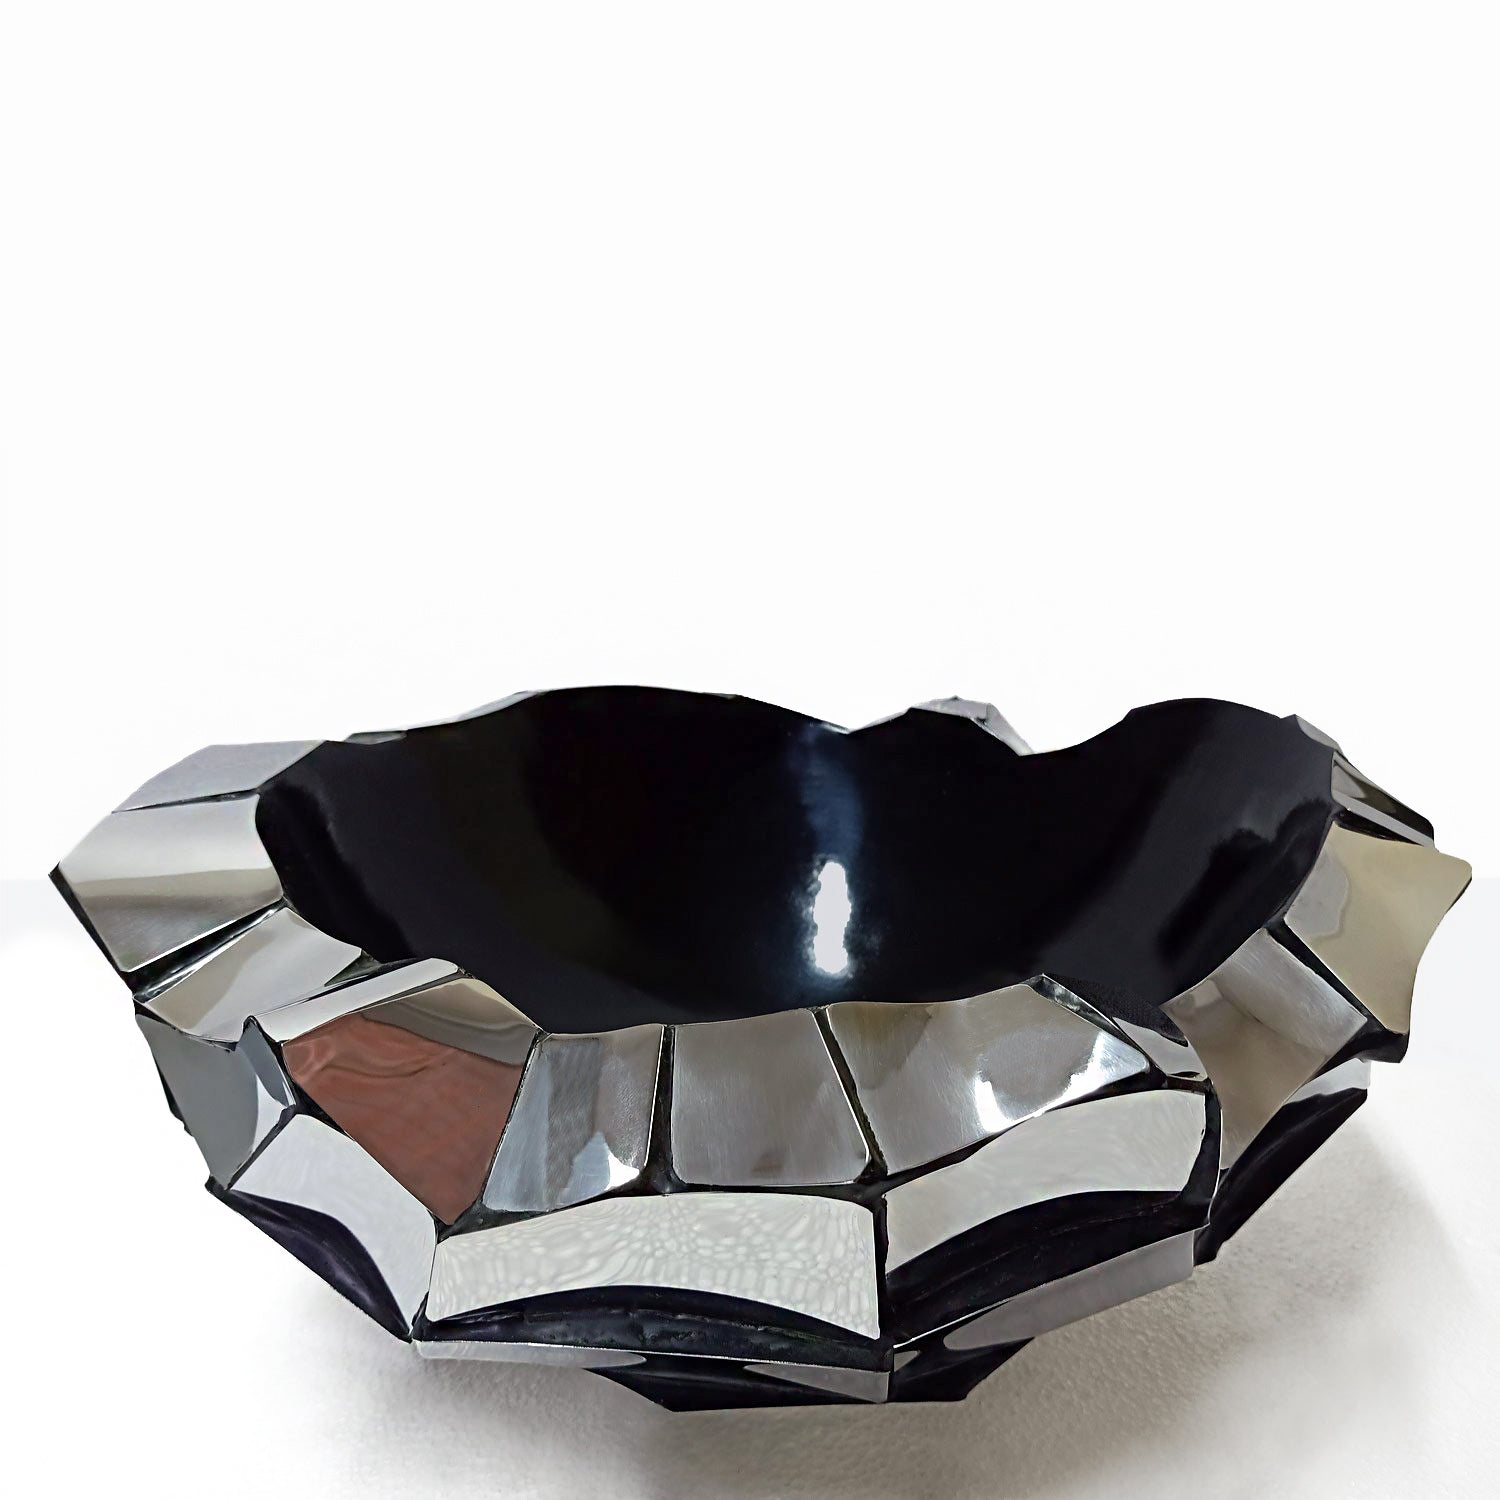 Chisel Bowl, stainless steel